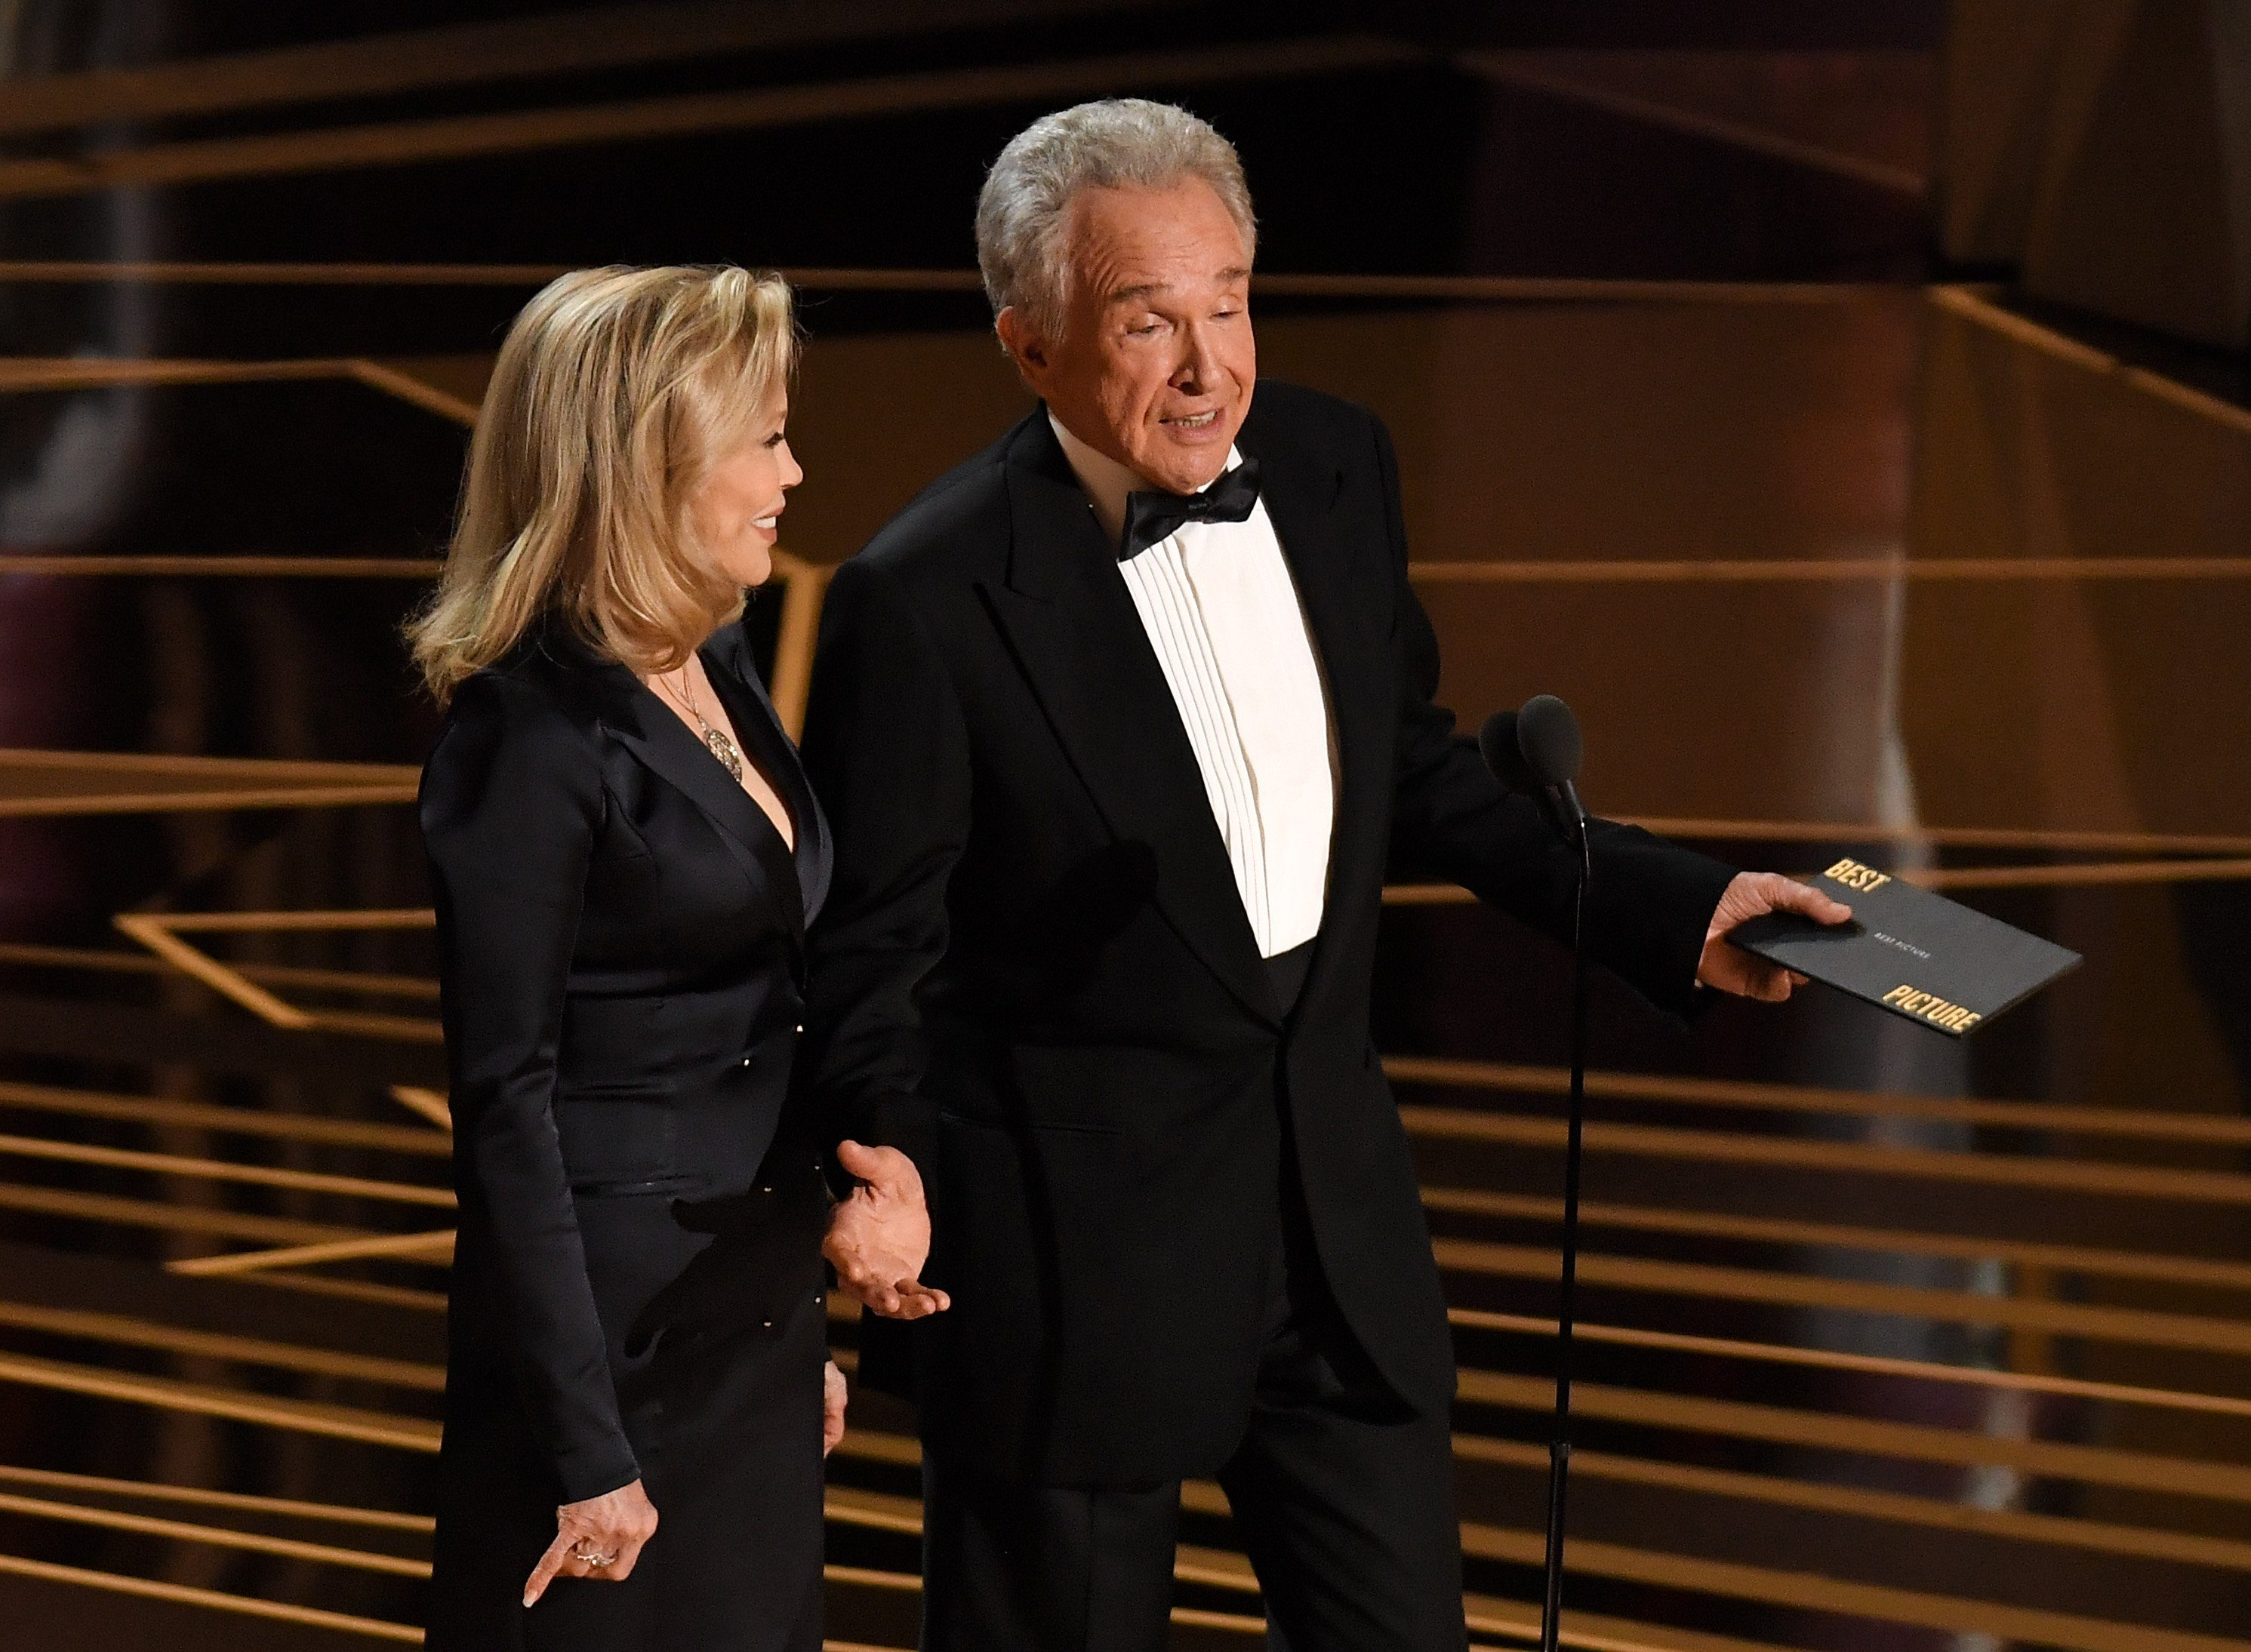 2018 oscars moonlight la la land Warren Beatty Faye Dunaway